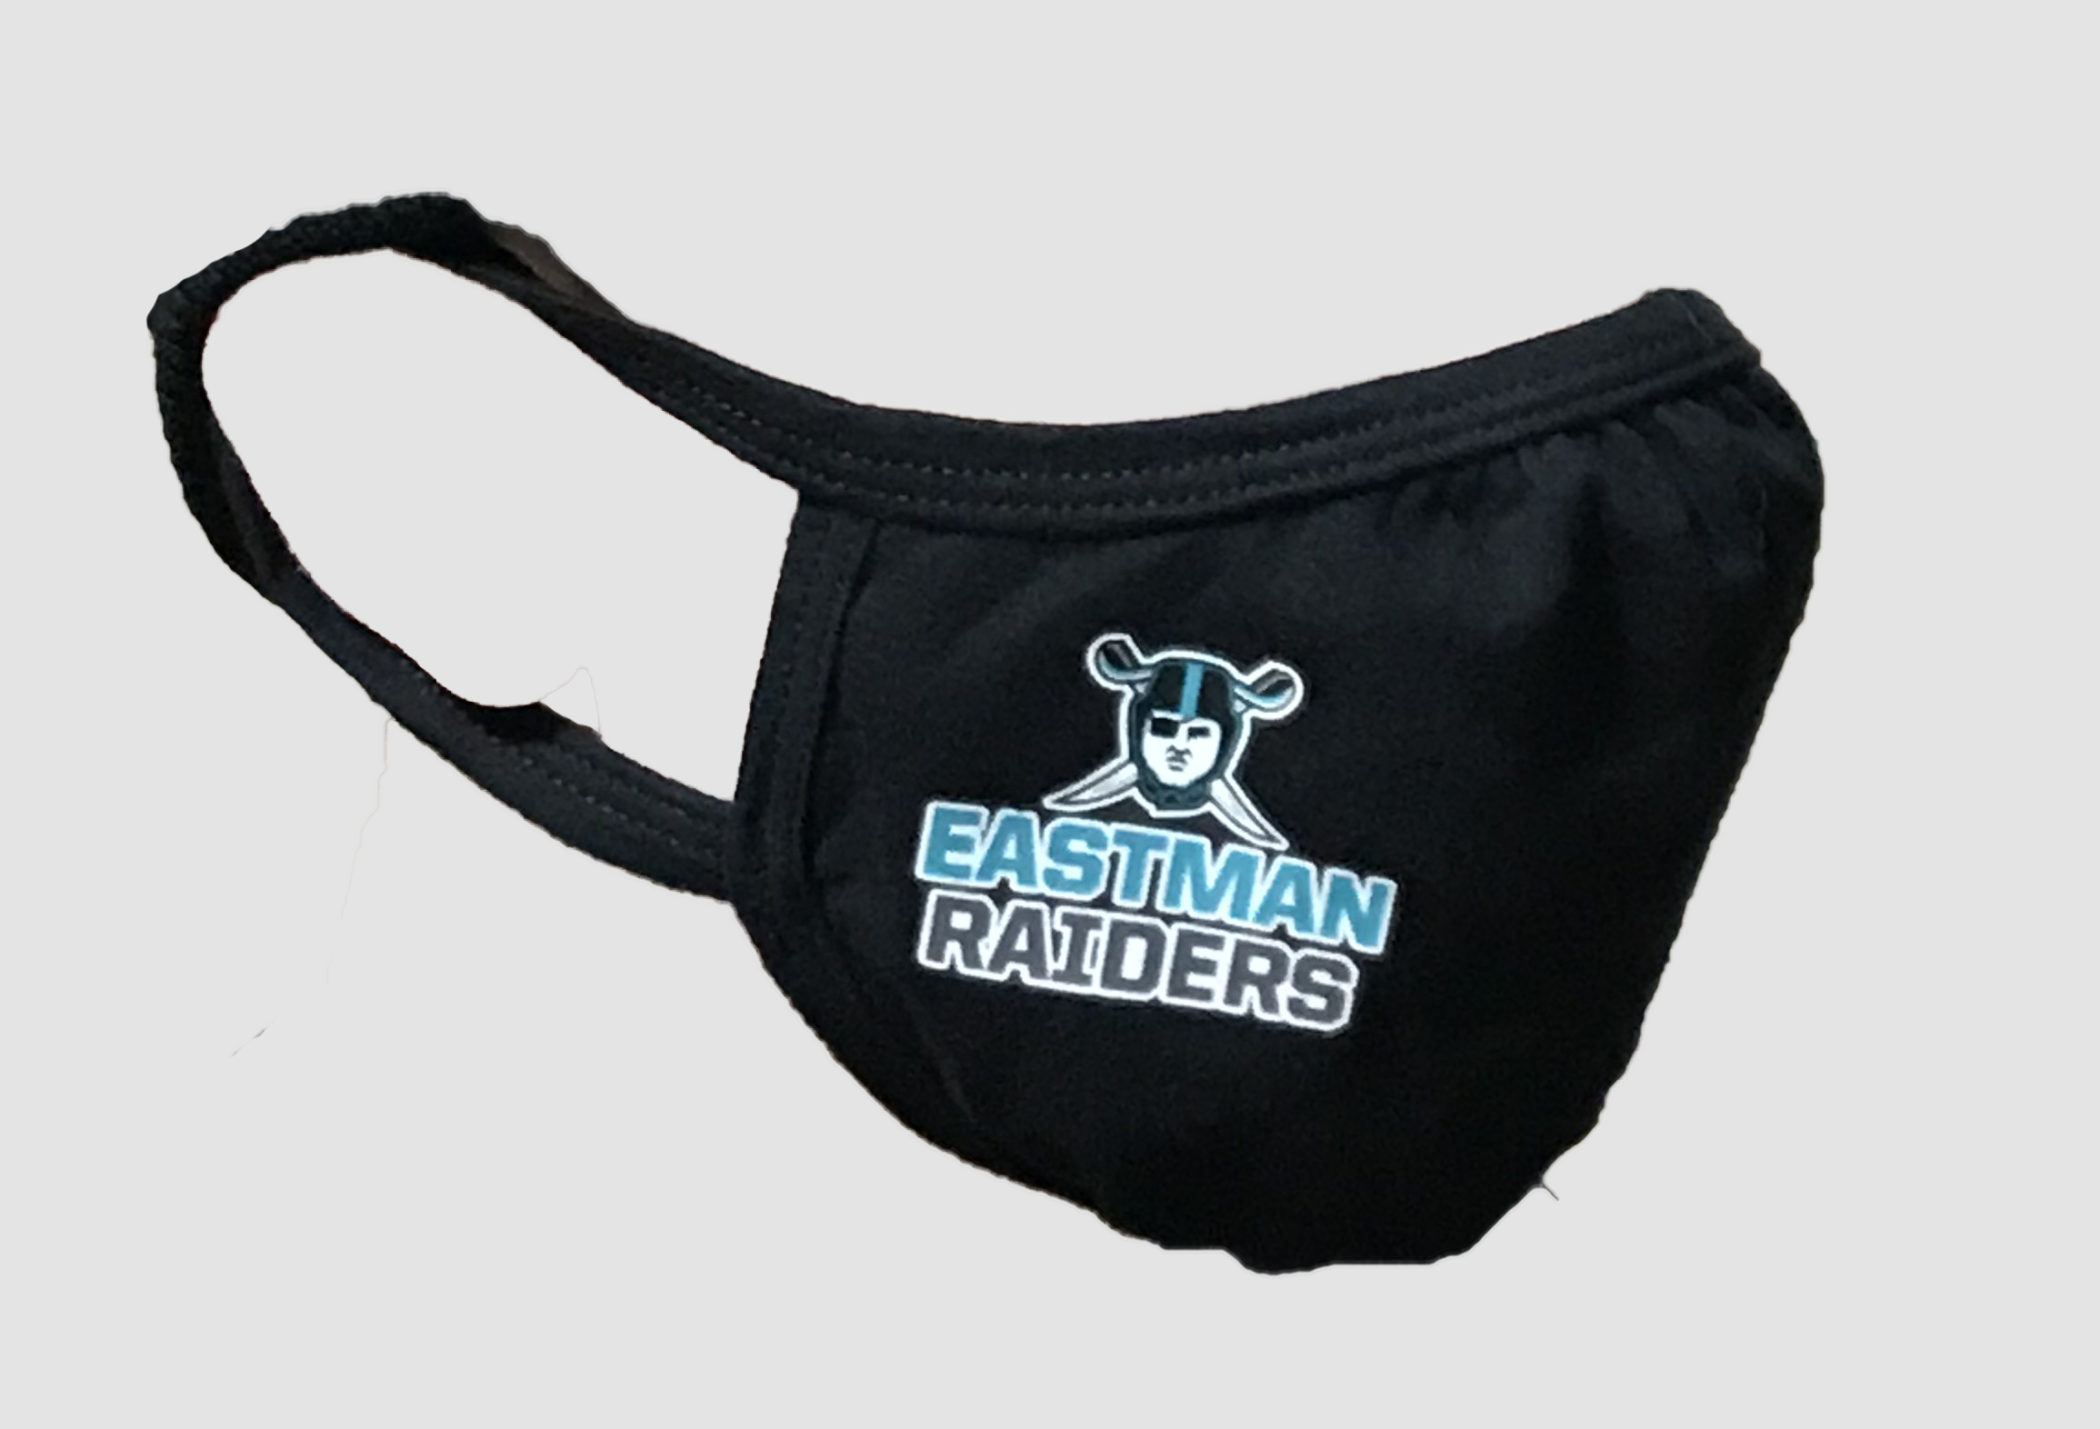 Eastman Raiders Branded Face Masks & Toques